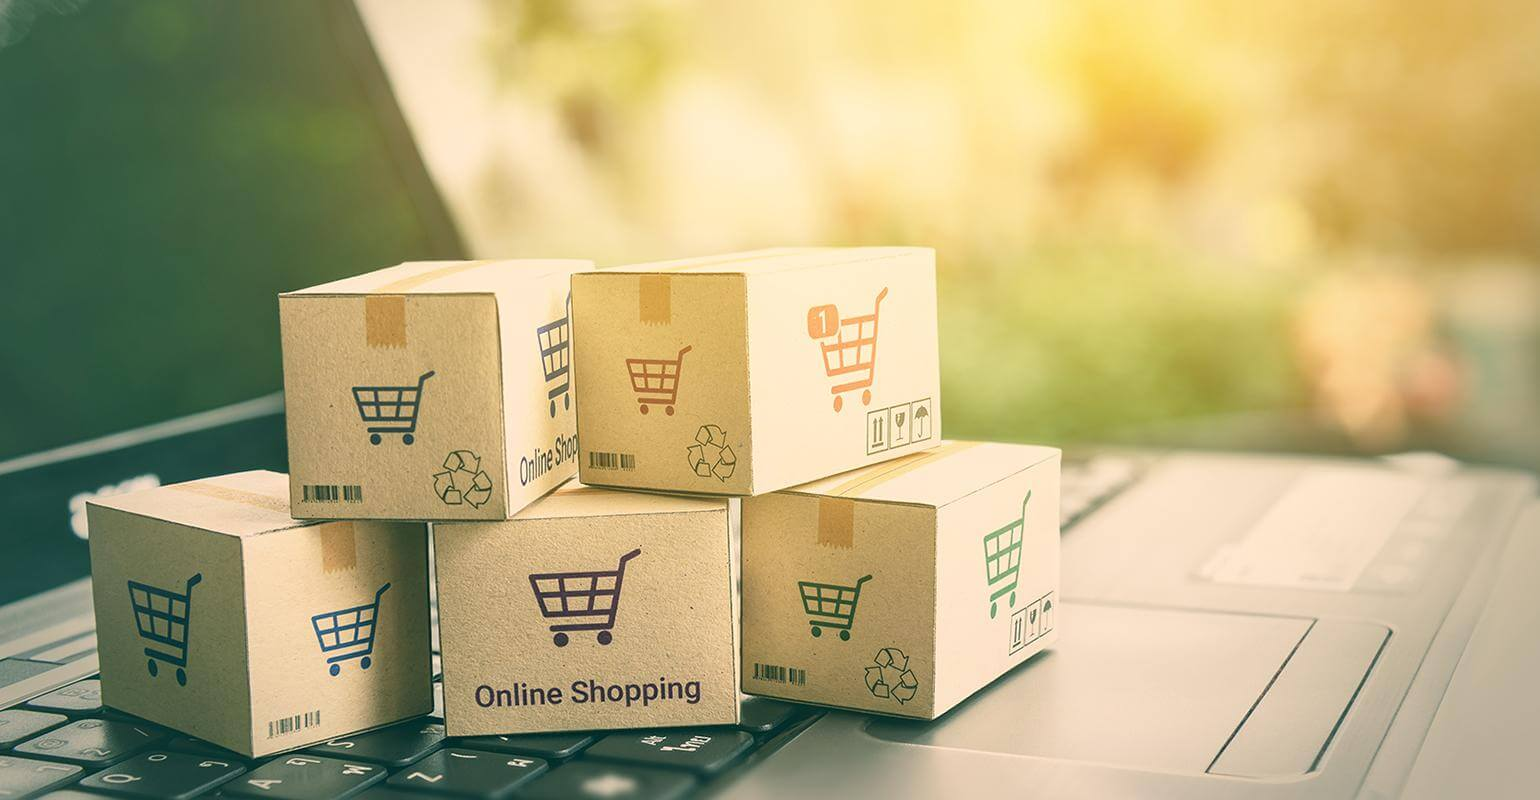 Plastics Today: Rethinking Packaging as Consumers Shift to E-Commerce